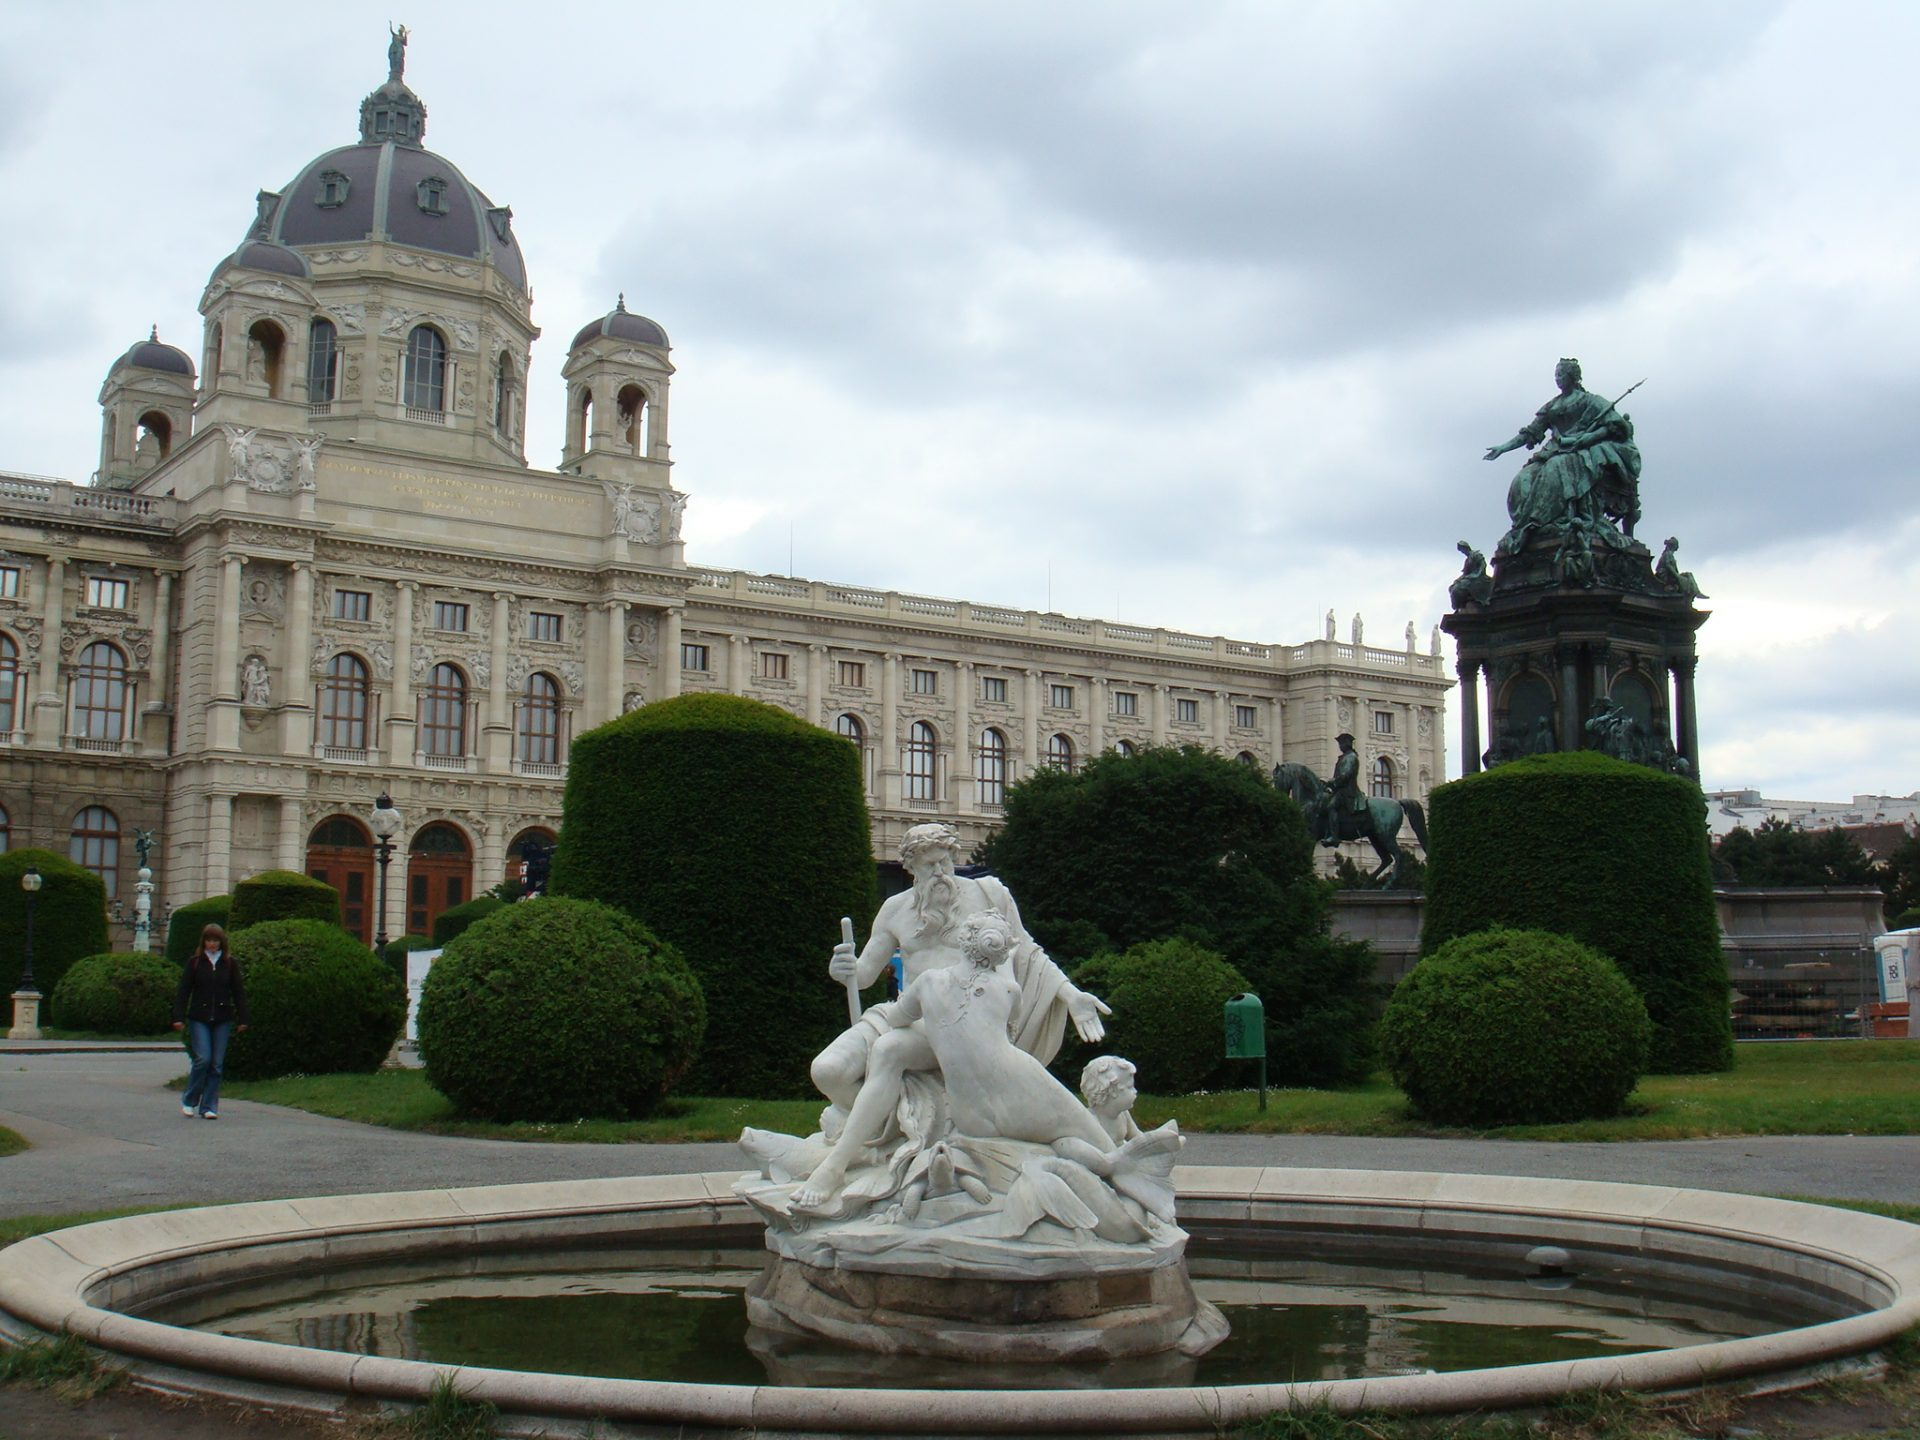 The Austrian National Museum of Art in Vienna